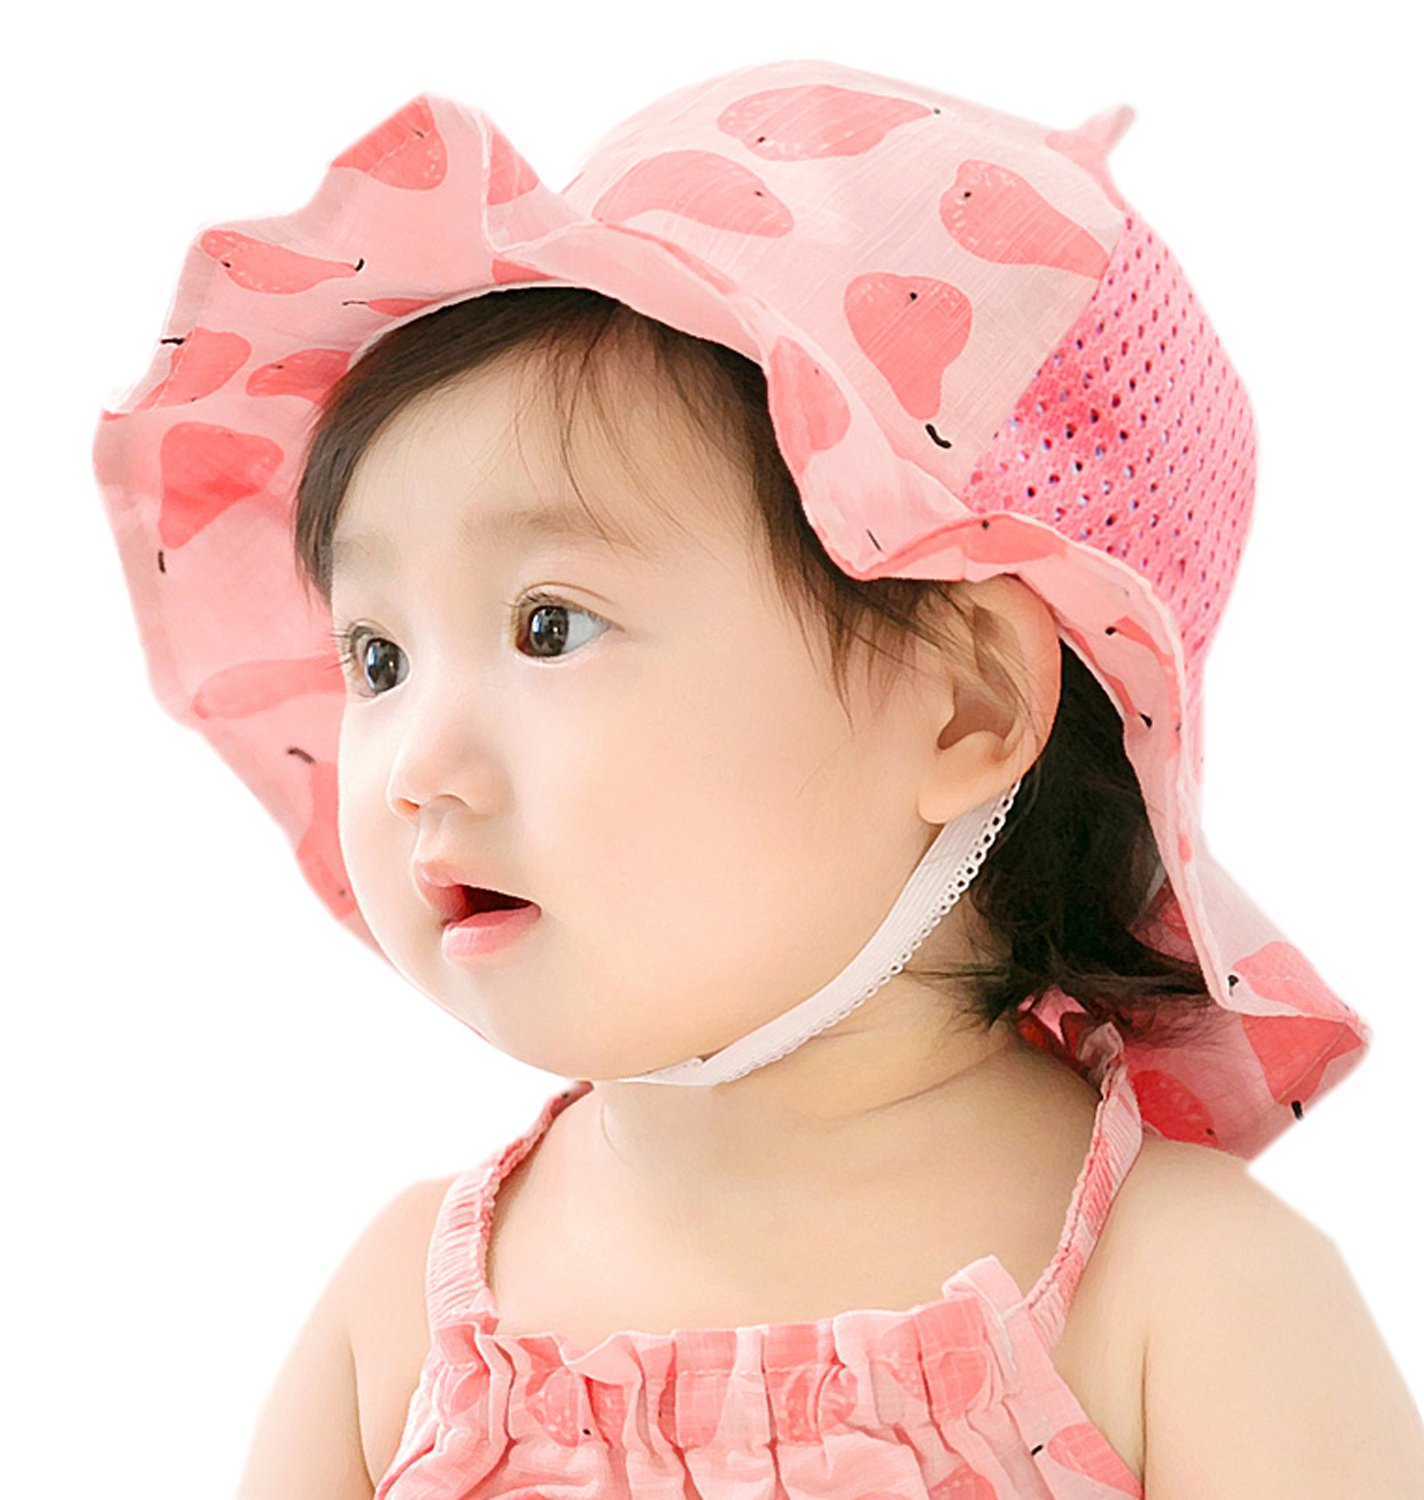 GZMM Baby Girls Sun Protection Hat Cotton Breathable Material UPF50+(6-12M) by GZMM (Image #6)